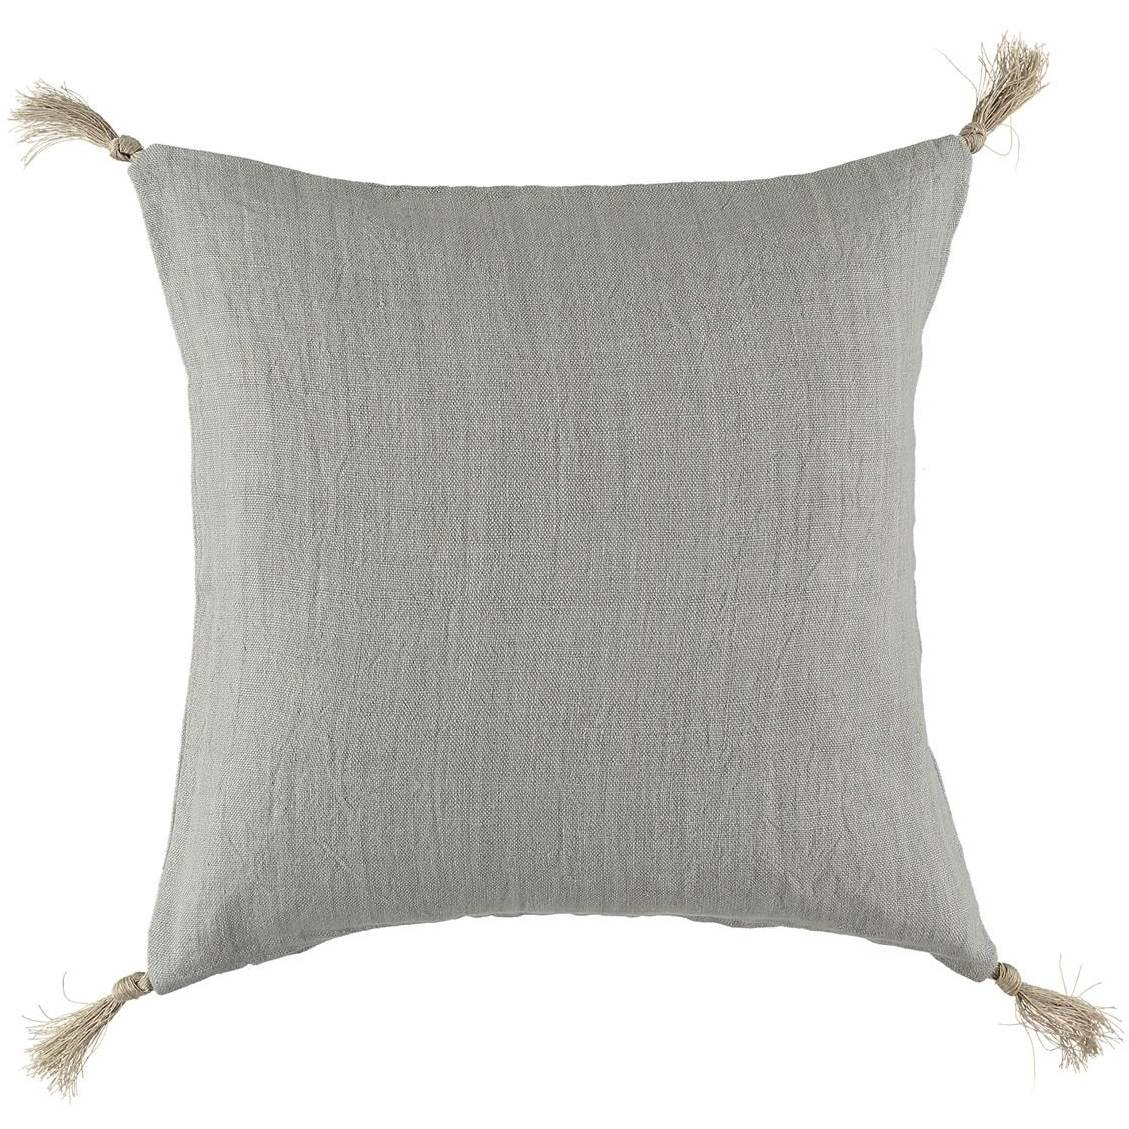 Gripsholm Linen Cushion Cover 50x50 cm, Light Grey